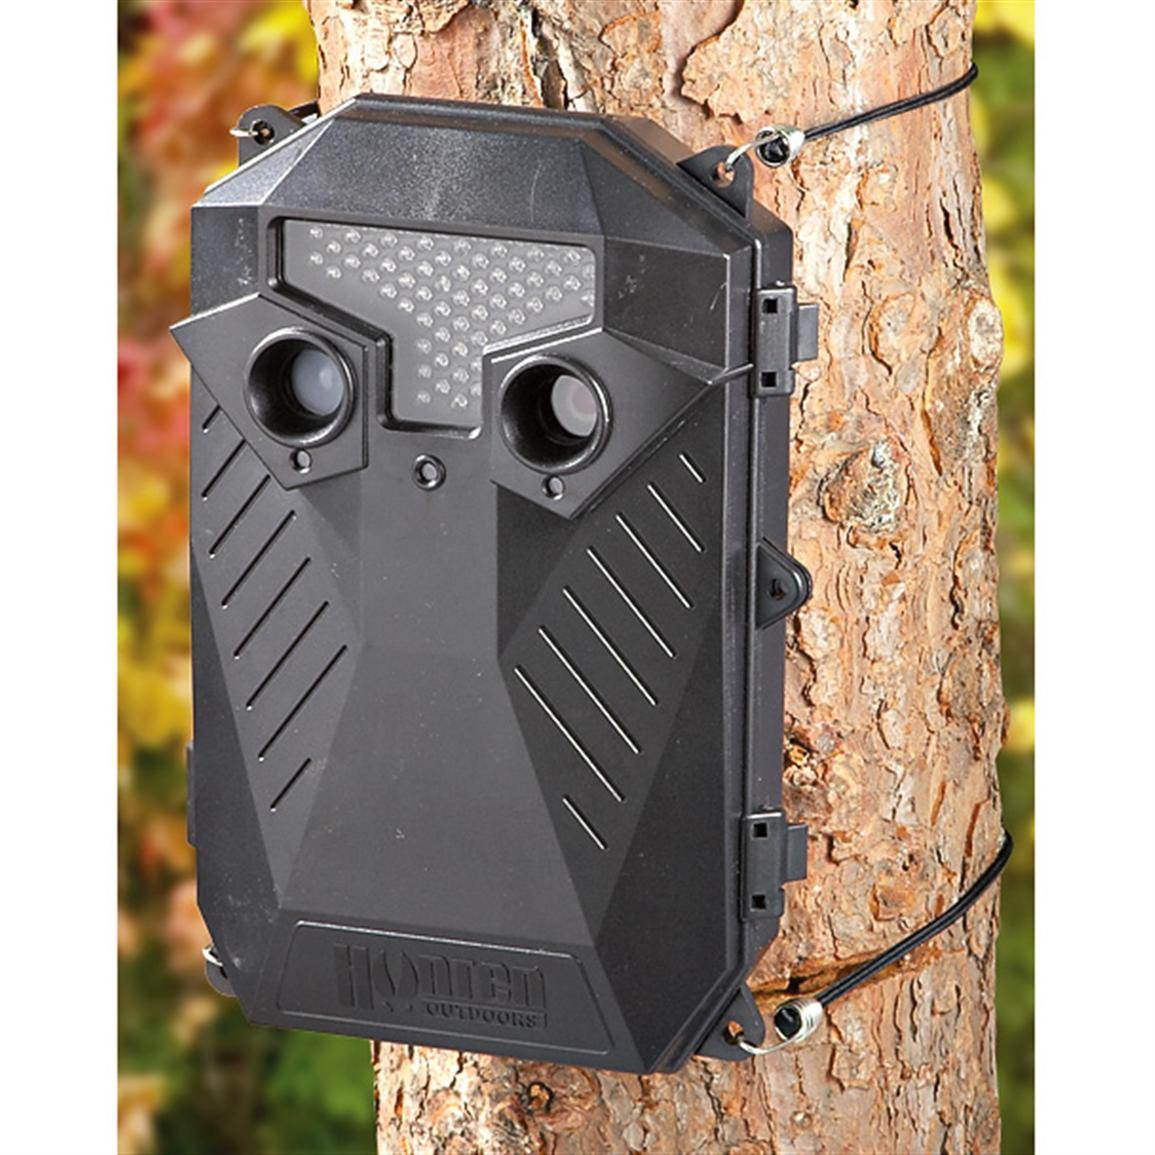 Hunten Outdoors® 5MP Infrared Game Camera with 6V Battery Pack